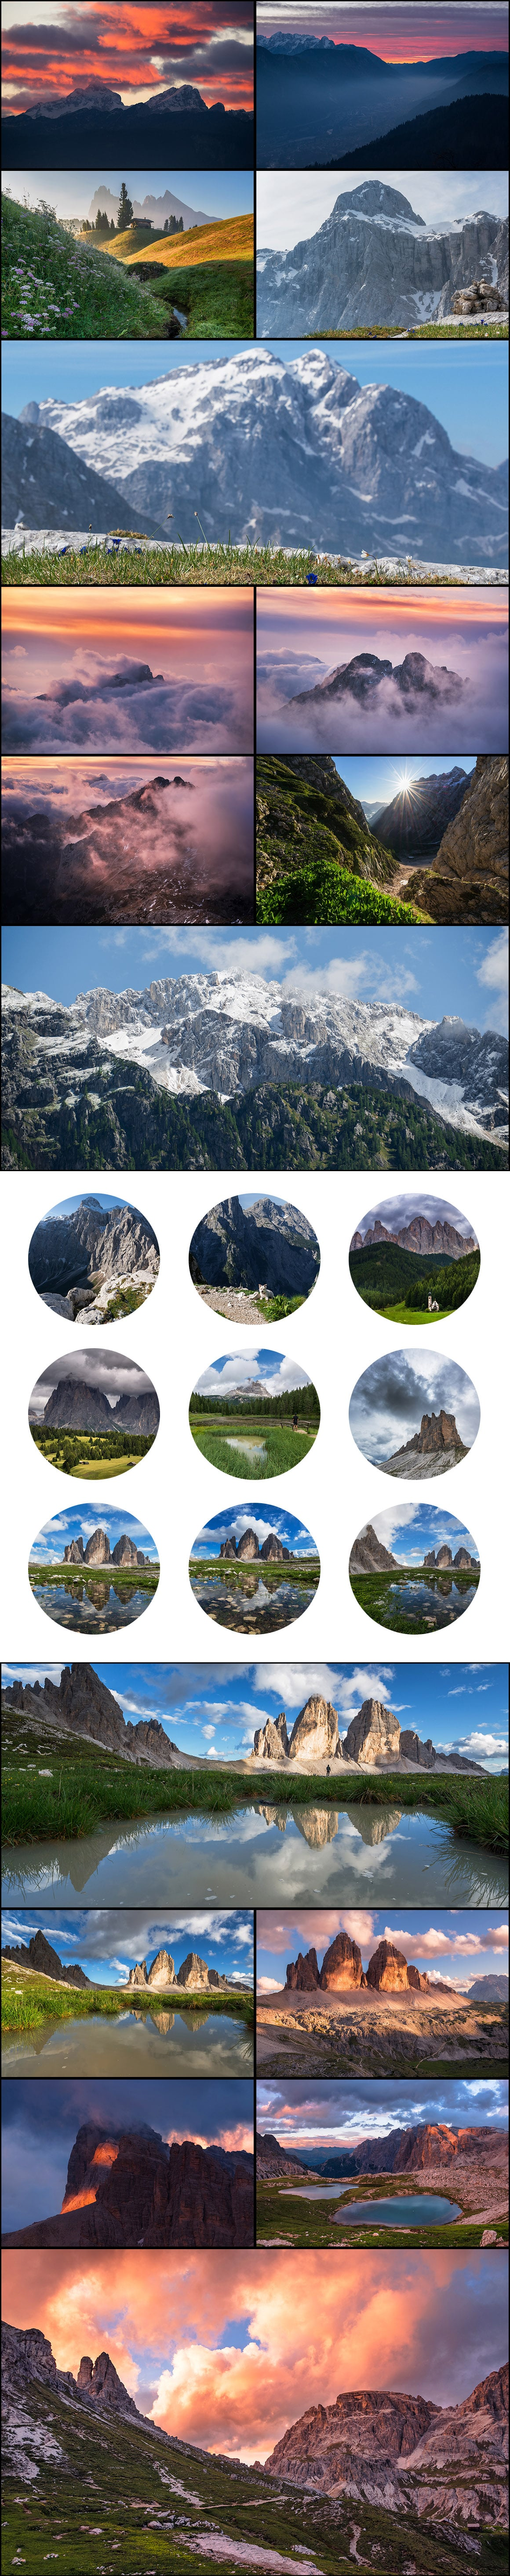 500+ Stock Images. Ultimate Photo Bundle  – $59 - PREVIEW mountains1